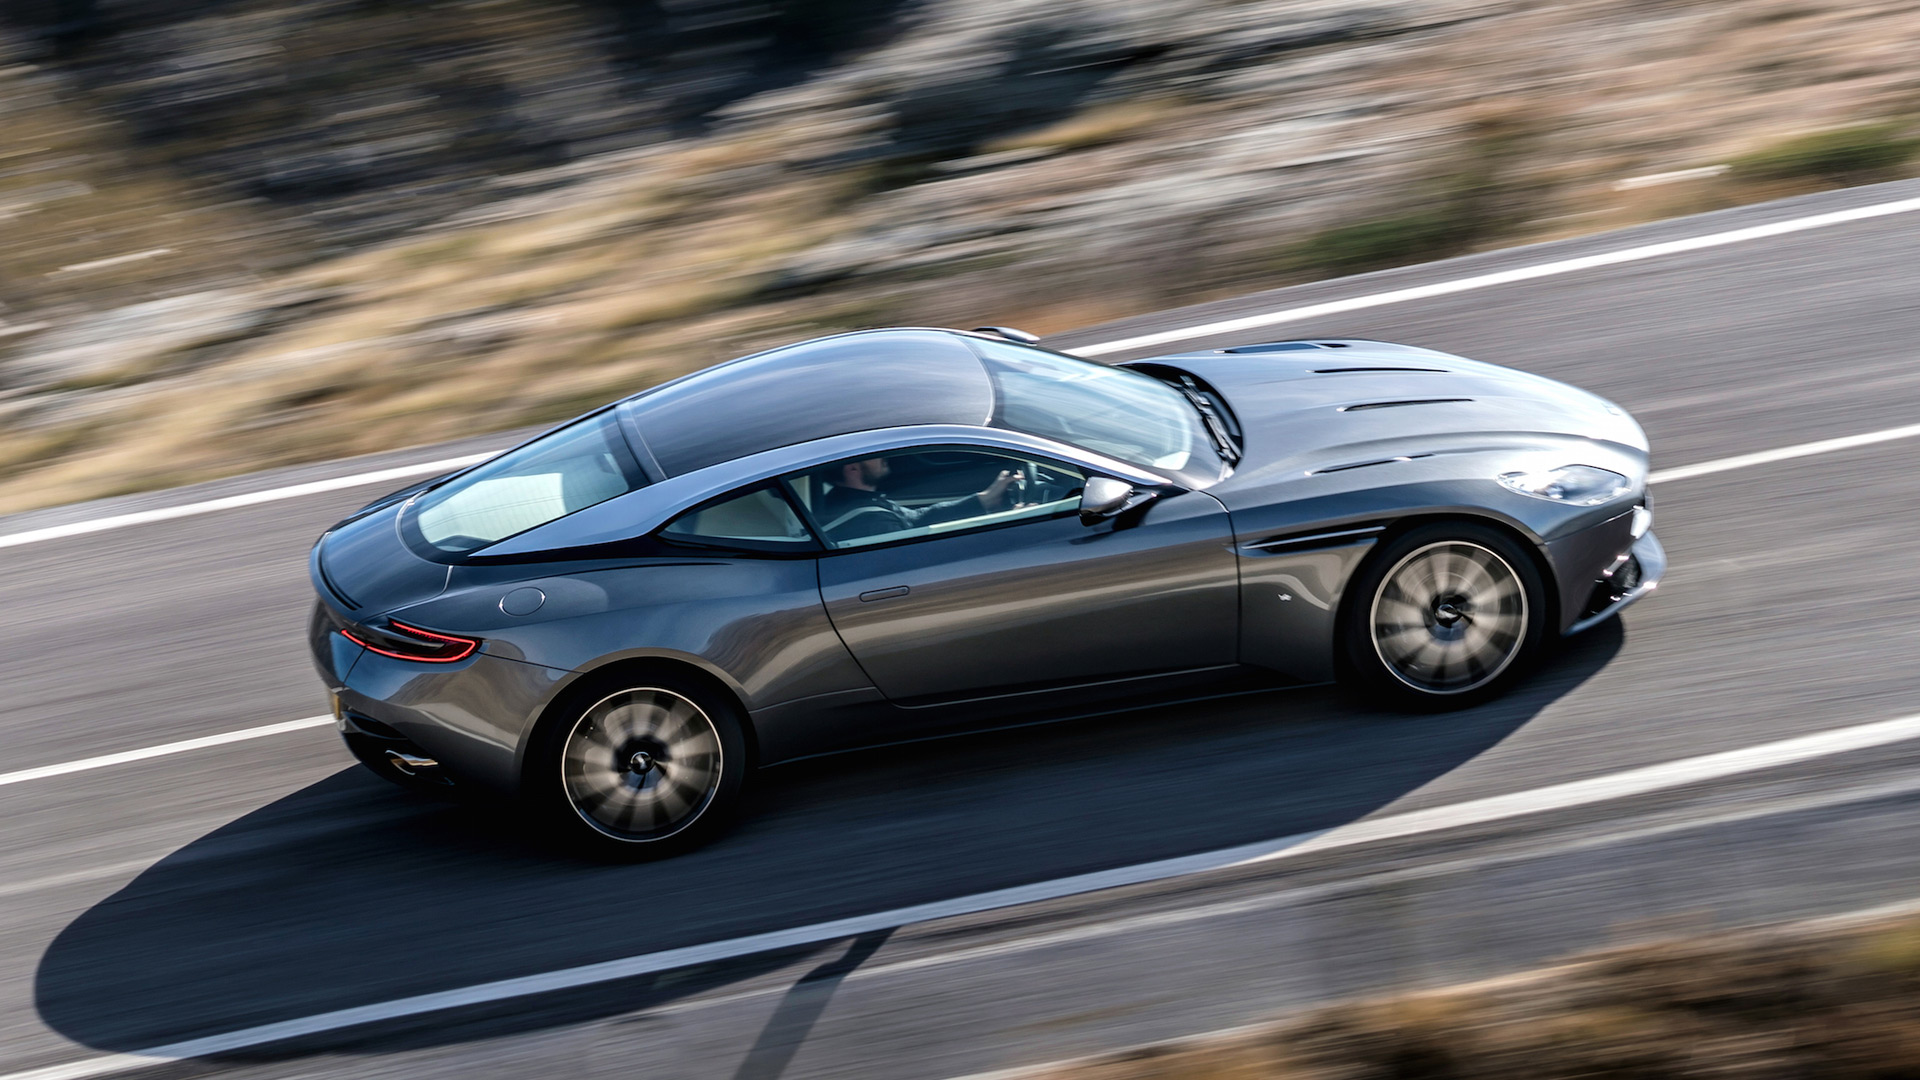 2017 Aston Martin Db11 Review Ratings Specs Prices And